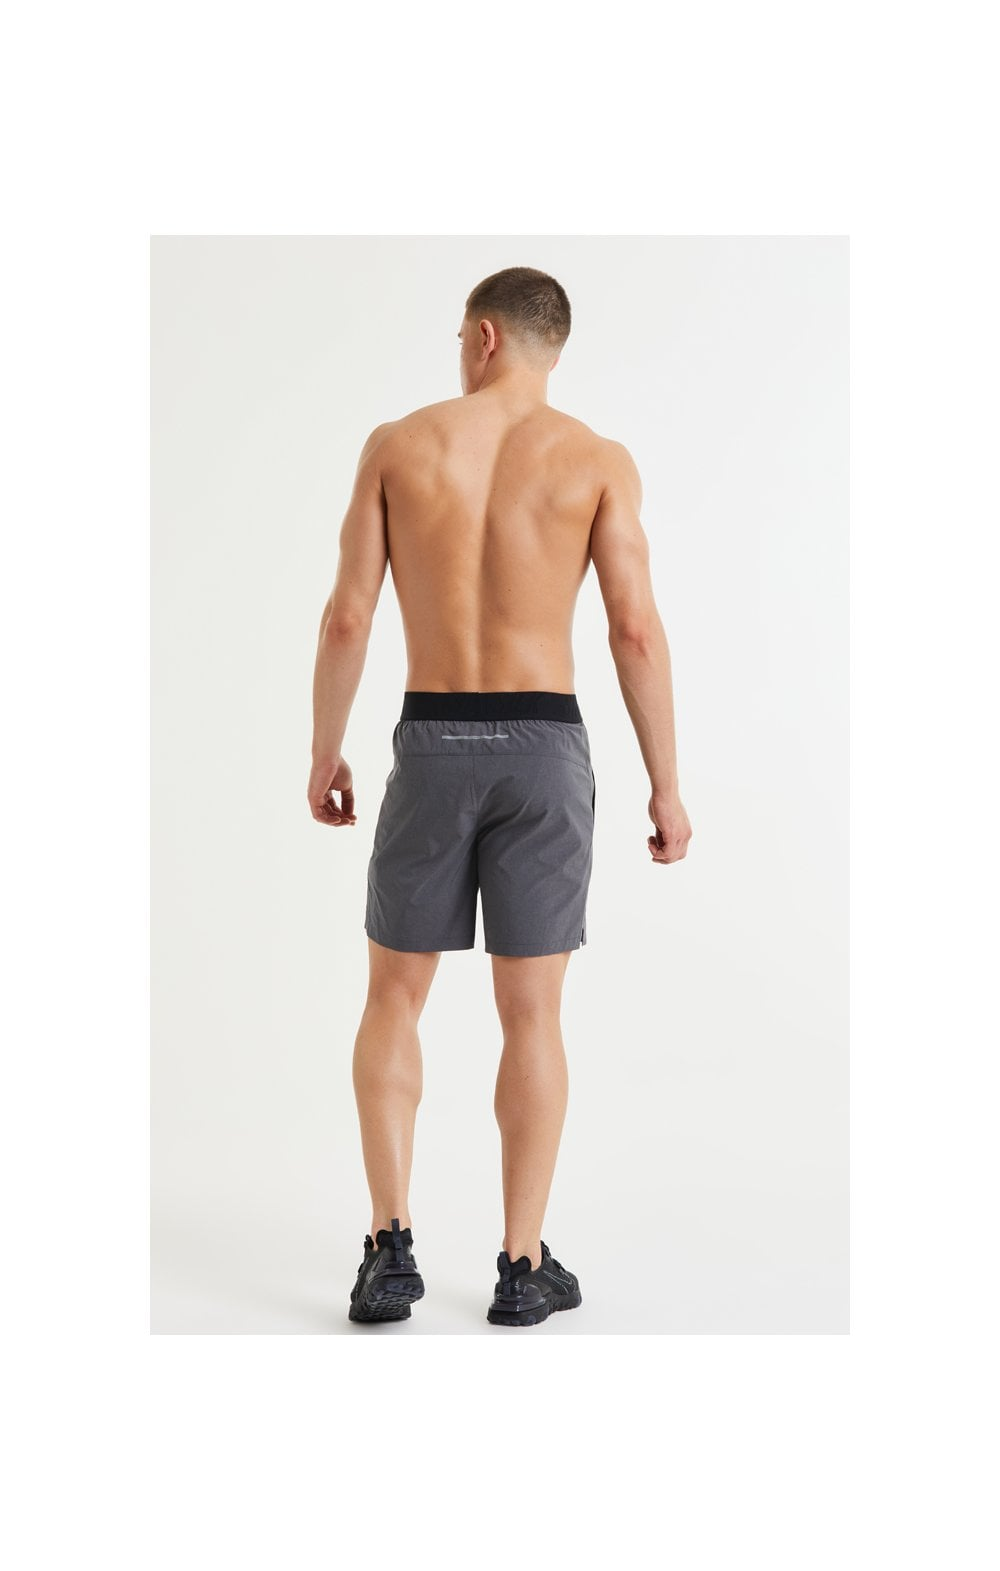 SikSilk Pressure Woven Long Shorts - Charcoal Marl (6)